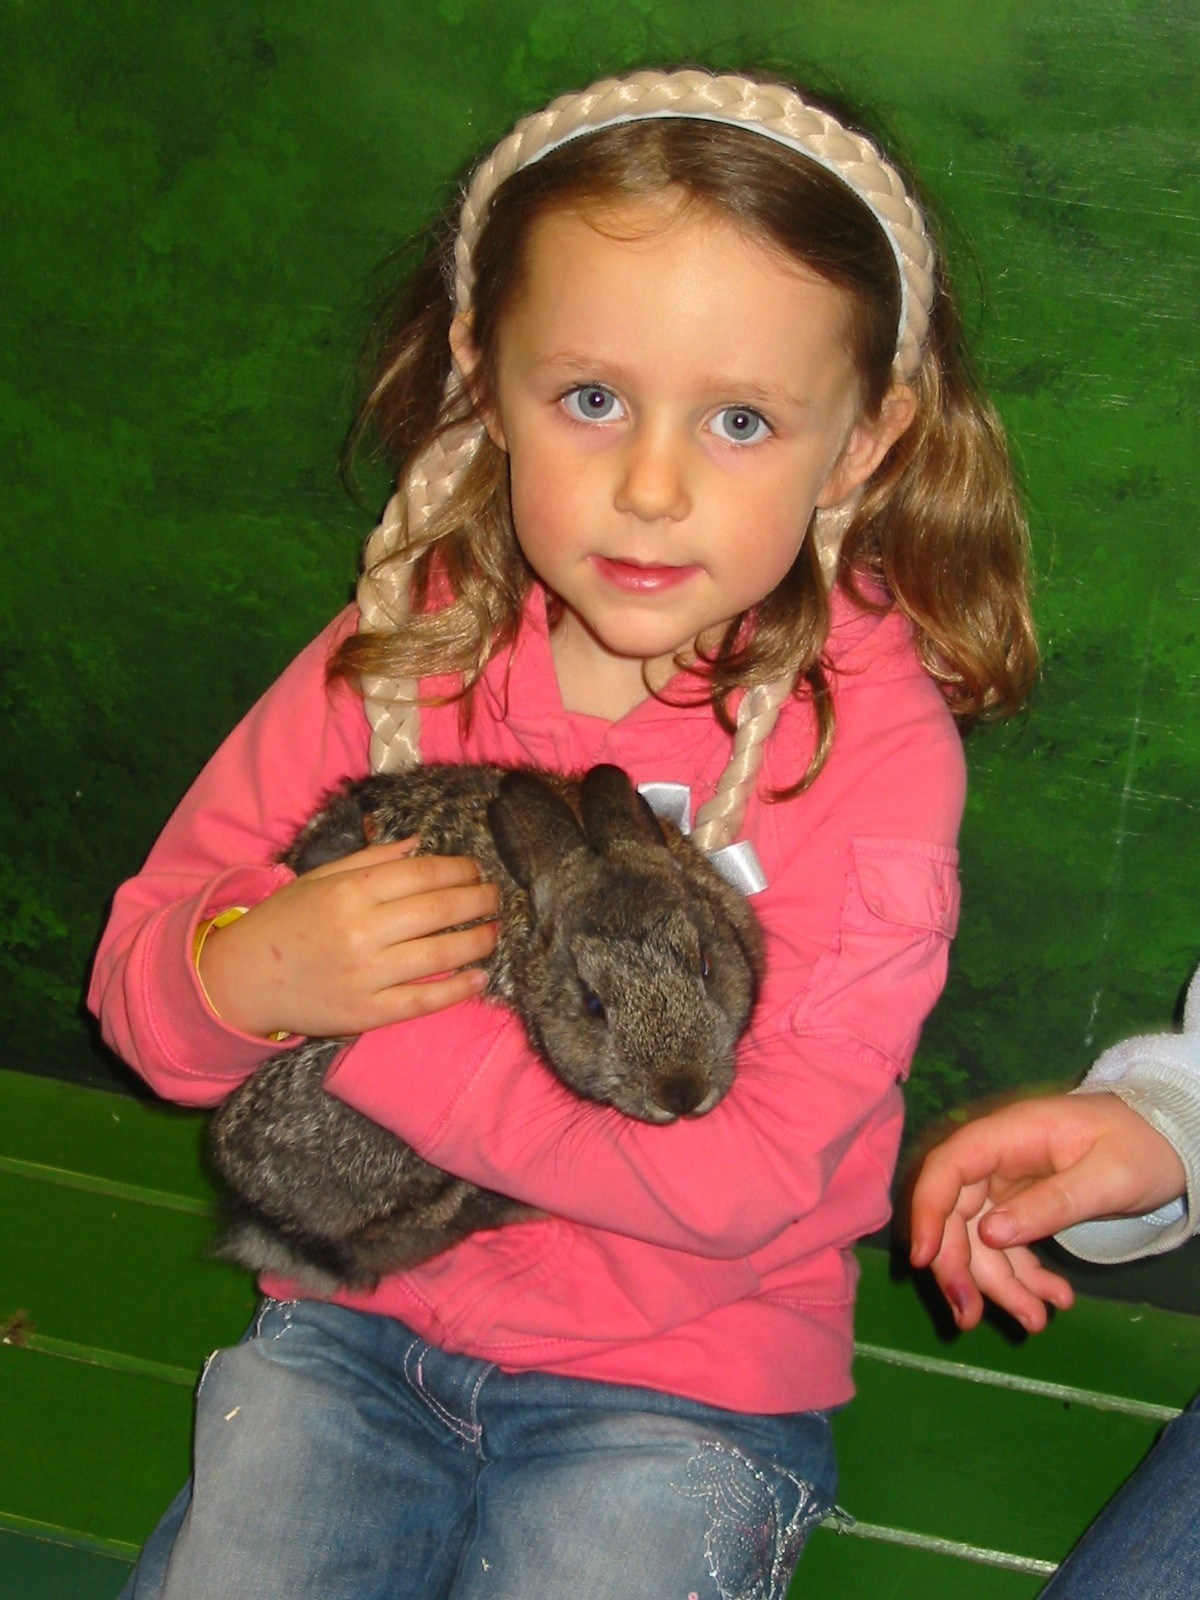 Alice loved animals